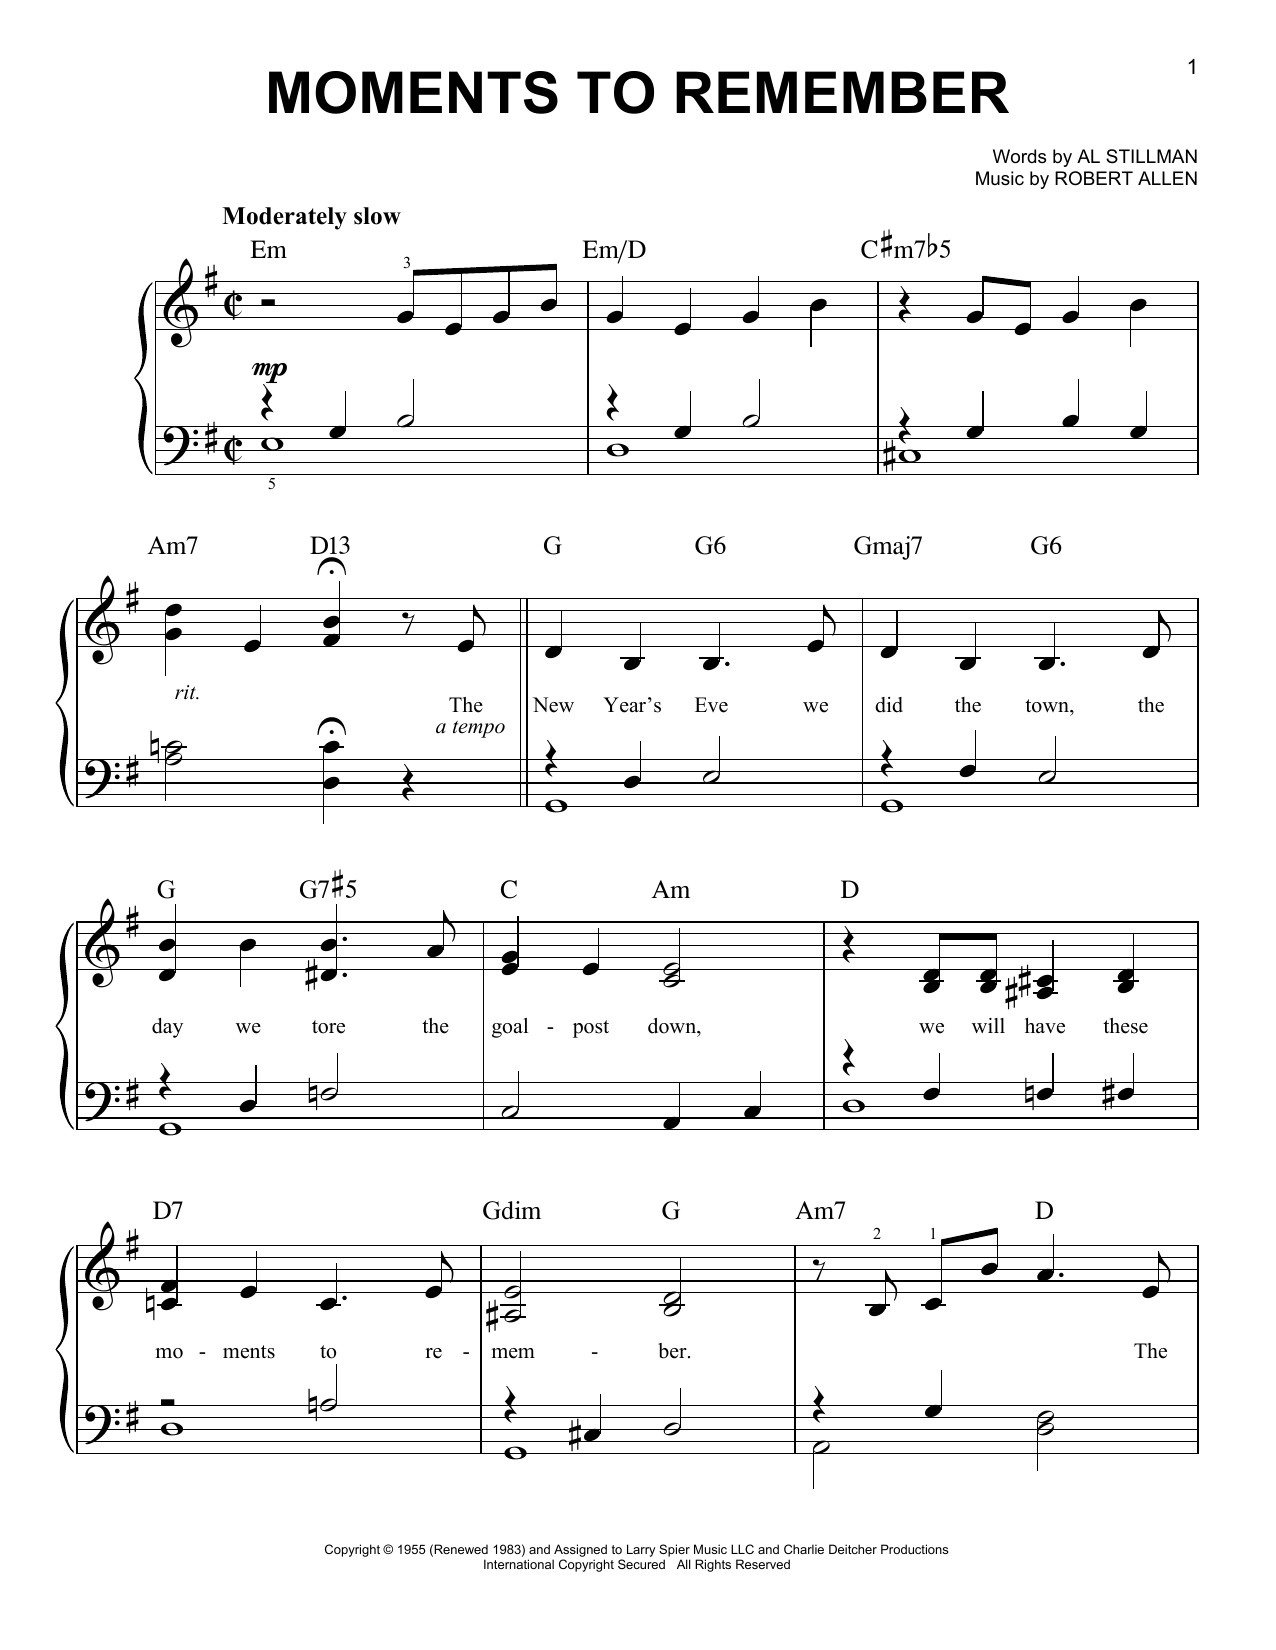 The Four Lads Moments To Remember sheet music notes and chords. Download Printable PDF.